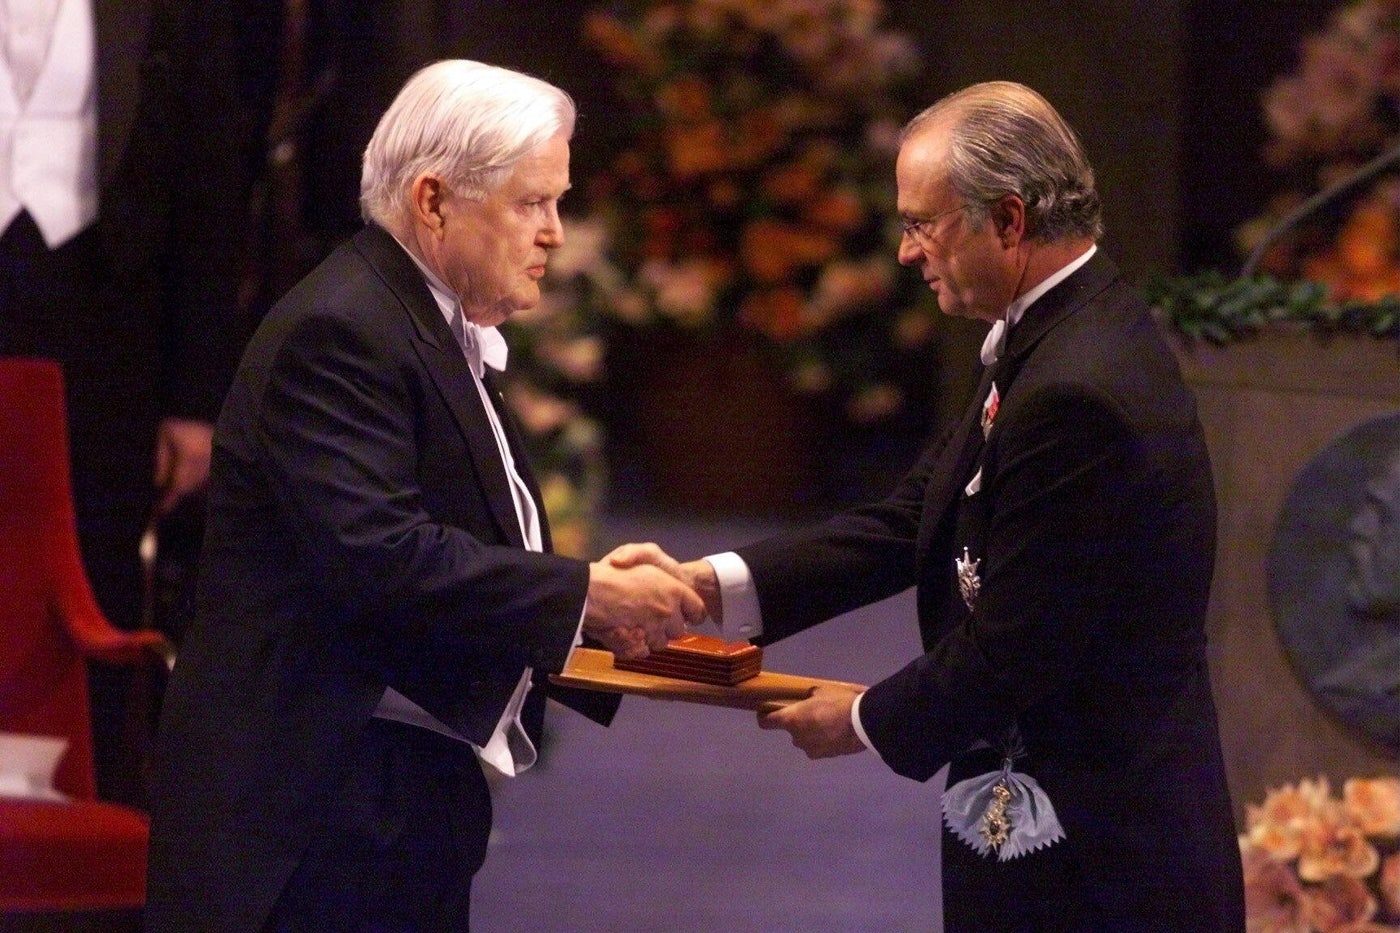 Robert Mundell receives the Nobel Prize in economics from Swedish King Carl XVI Gustaf, in 1999.